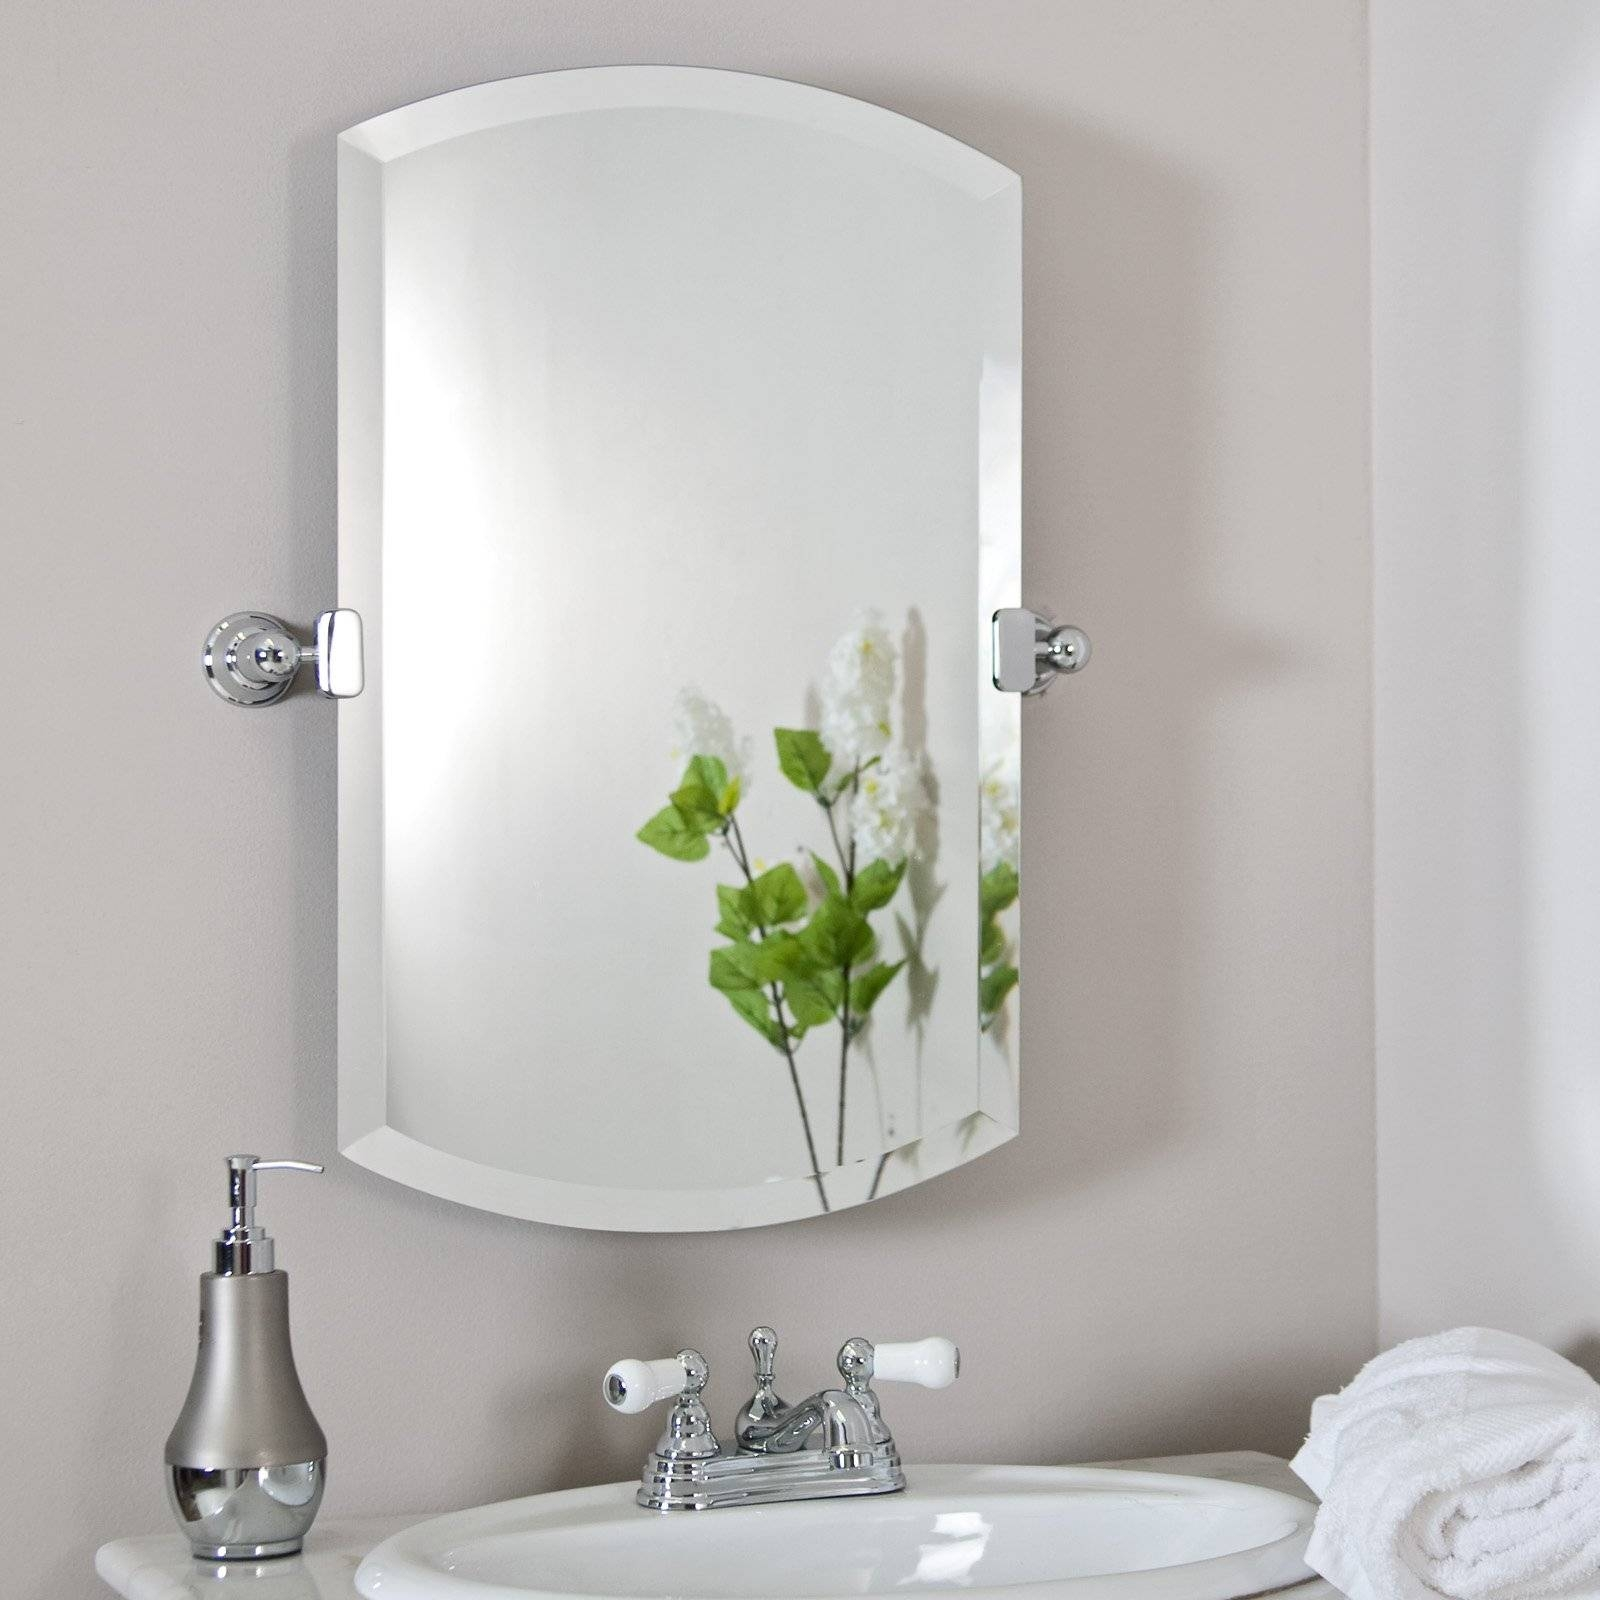 Natural Sink As Wells As Faucet Framed Mirrors With Bathroom in Unusual Shaped Mirrors (Image 14 of 25)